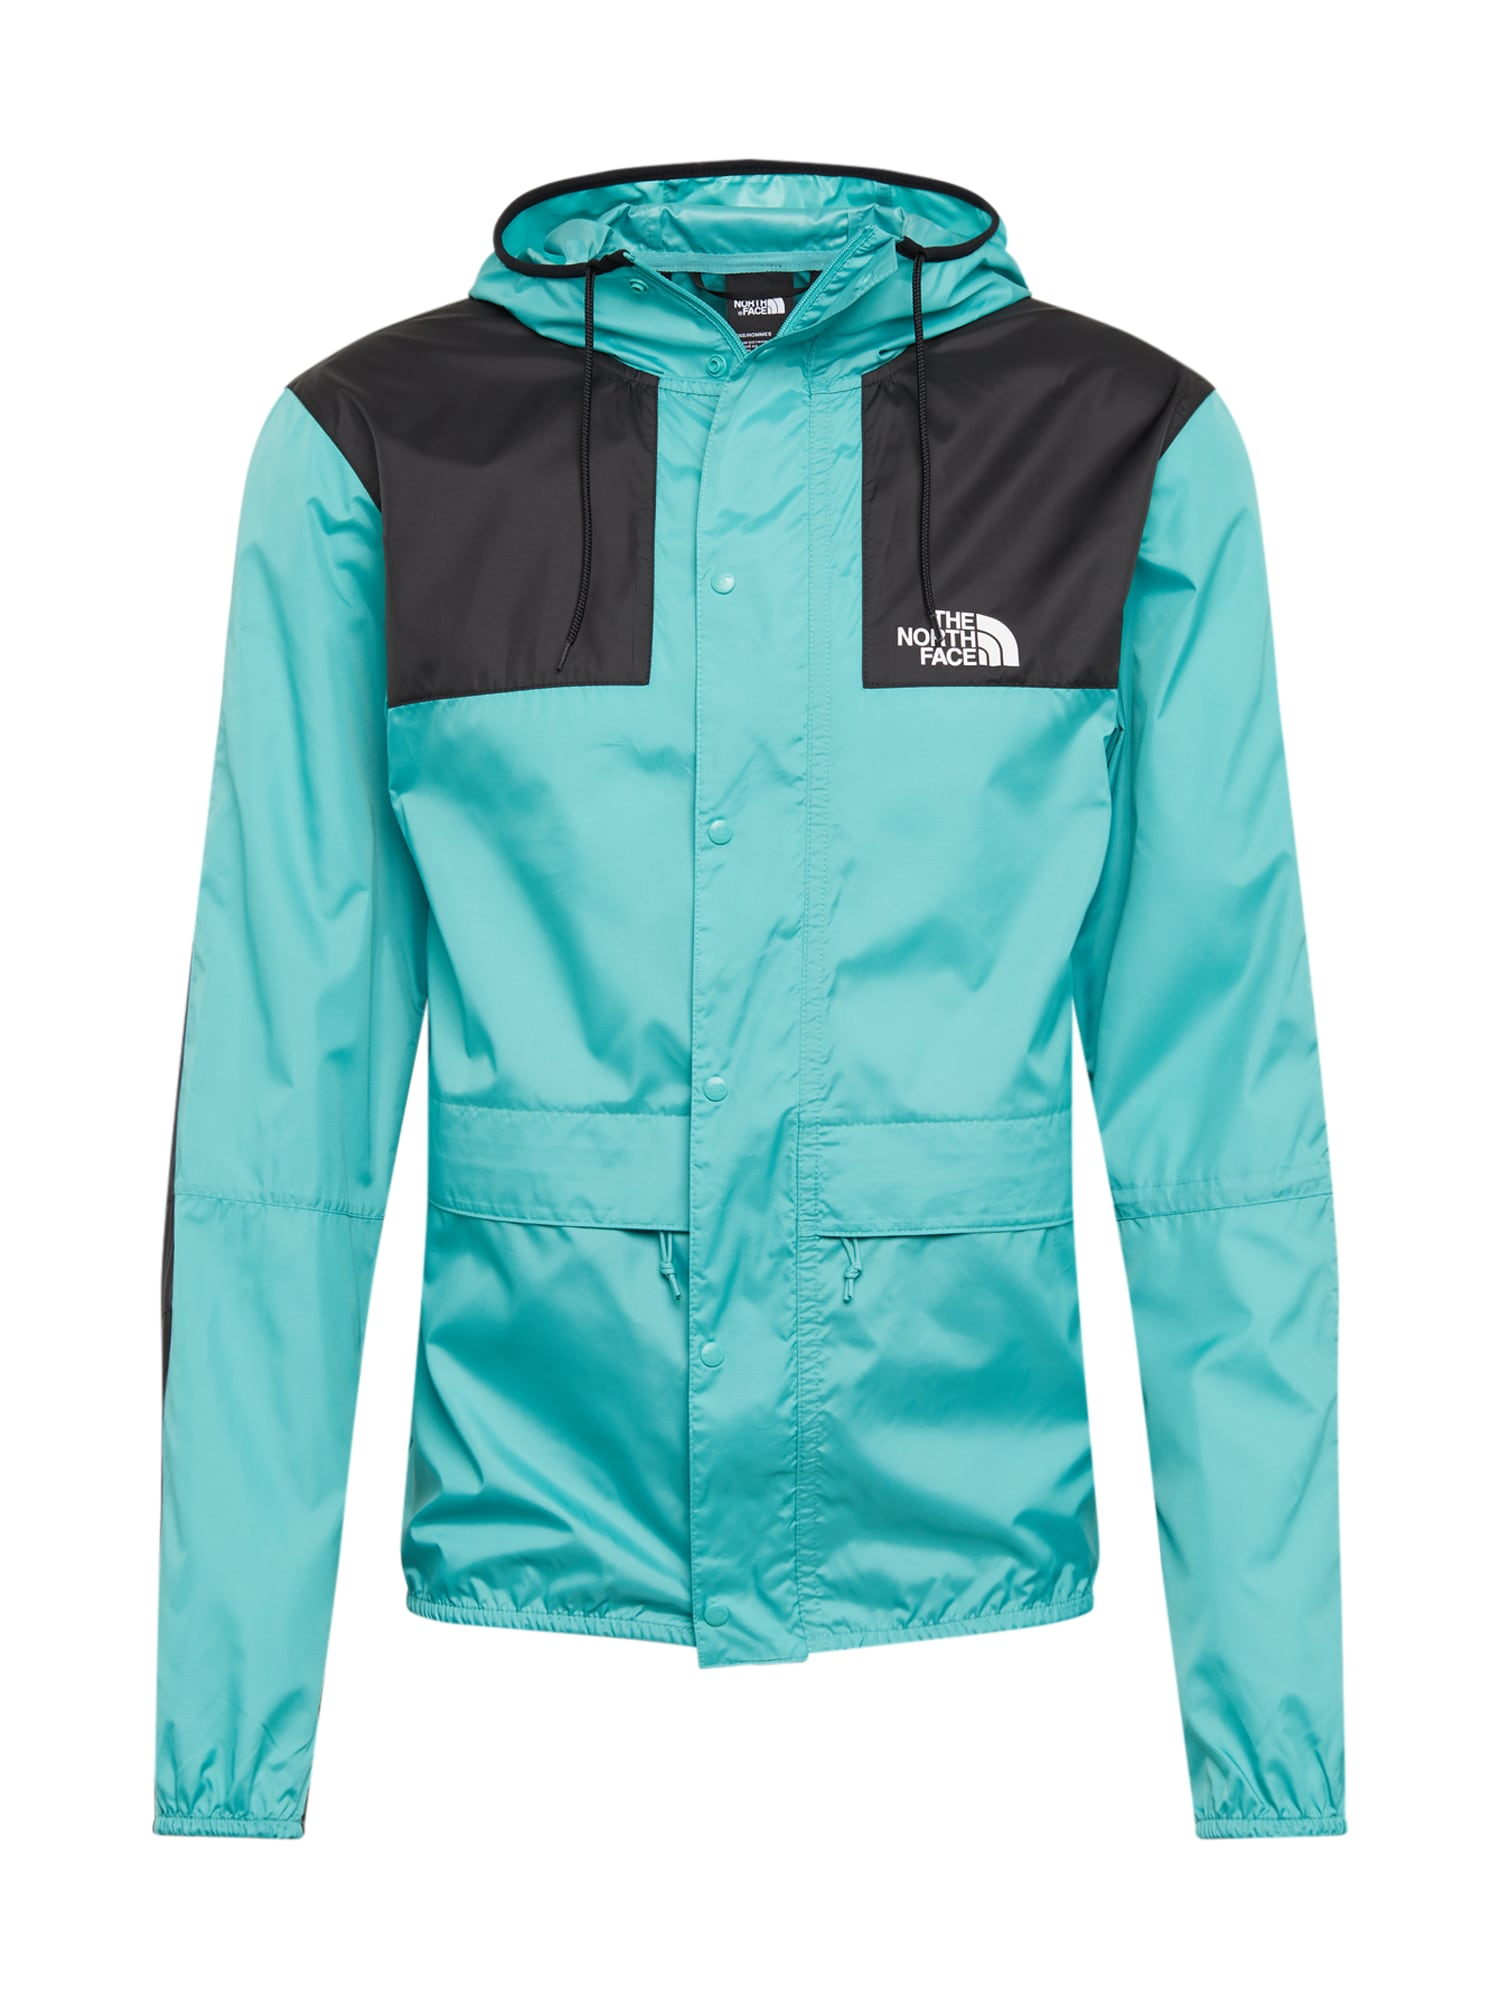 THE NORTH FACE Átmeneti dzseki 'Mountain 1985'  fekete / türkiz